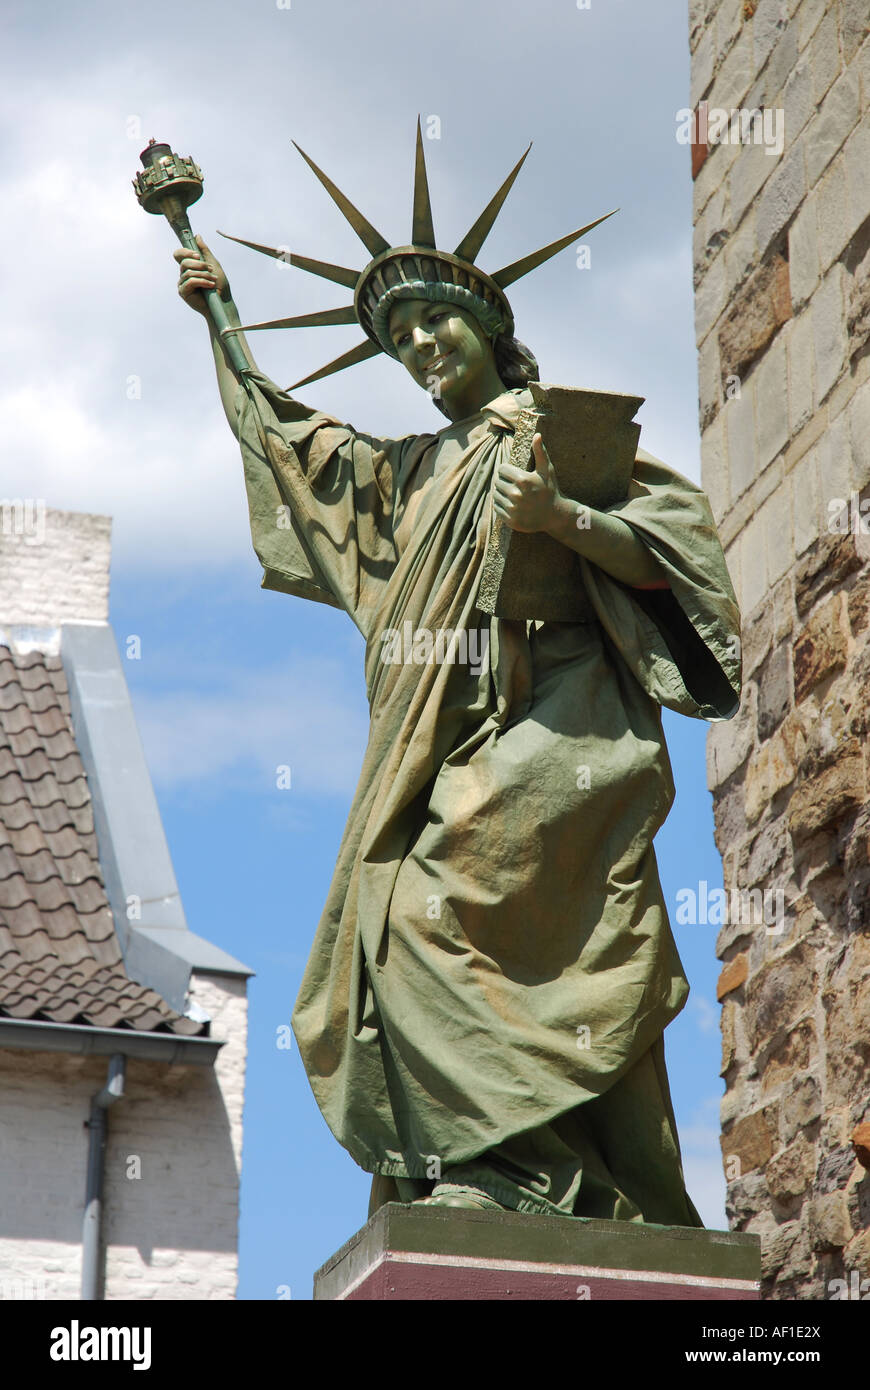 Full Frame Portrait Of Living Statue Of Liberty Thorn Limburg Stock